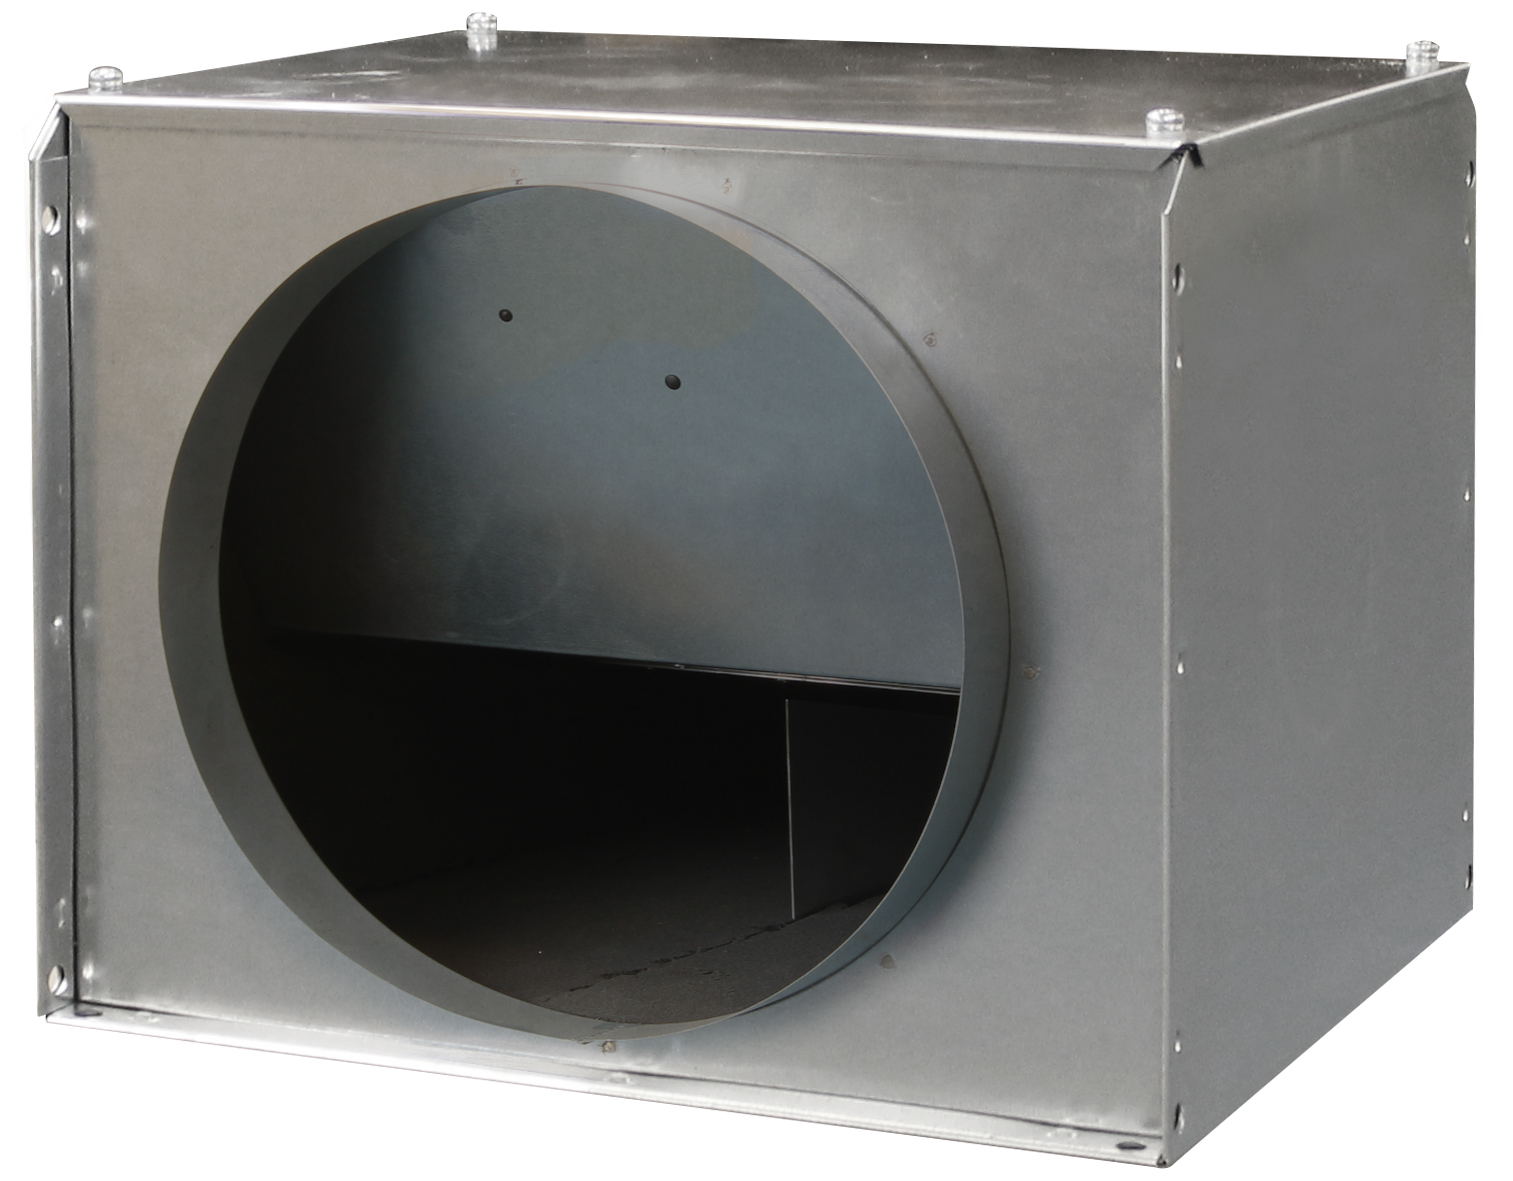 Quiet Pack (QP) - In-Line Centrifugal Single Duct Fans | Vent-Axia